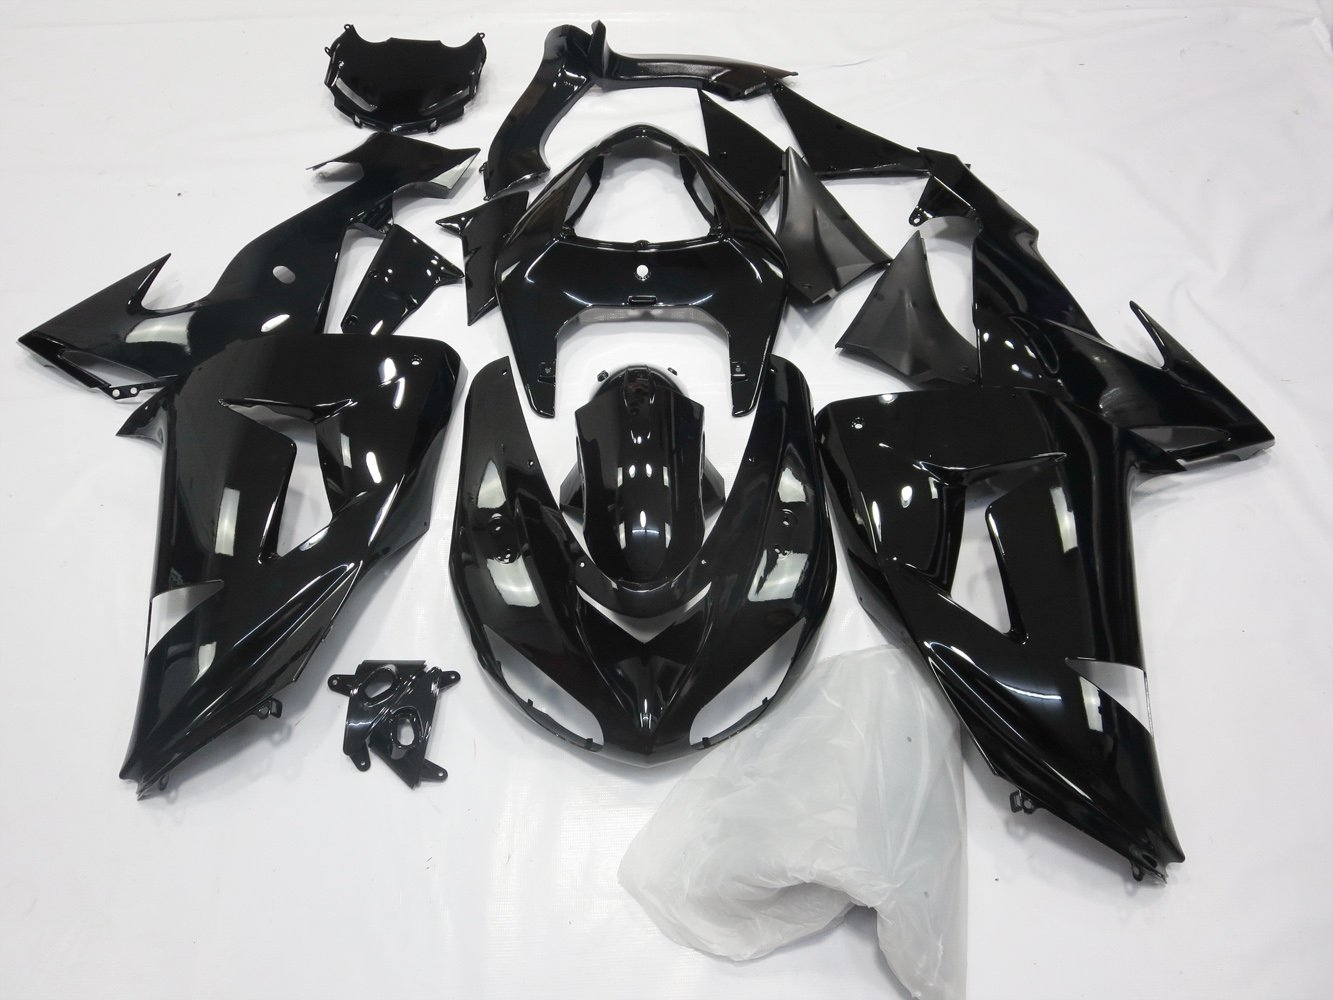 Amazon.com: ZXMOTO Glossy Black Painted Fairing Kit BodyWork ...